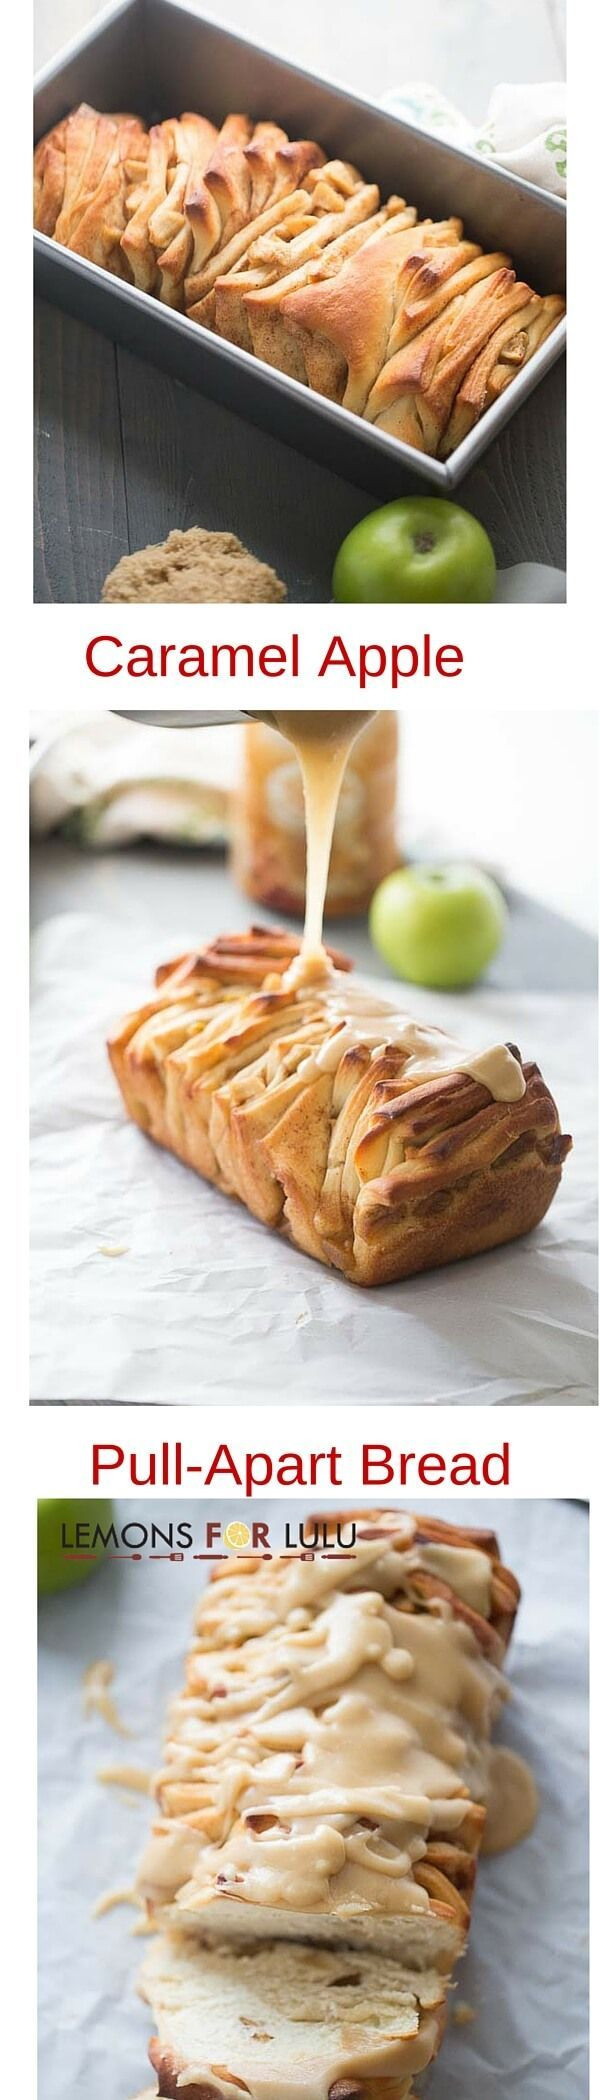 This pull apart apple cinnamon bread features sweet apples tucked inside tender slices of bread. The whole loaf is covered in a silky caramel glaze! lemonsforlulu.com #CreateDelight #IDelight